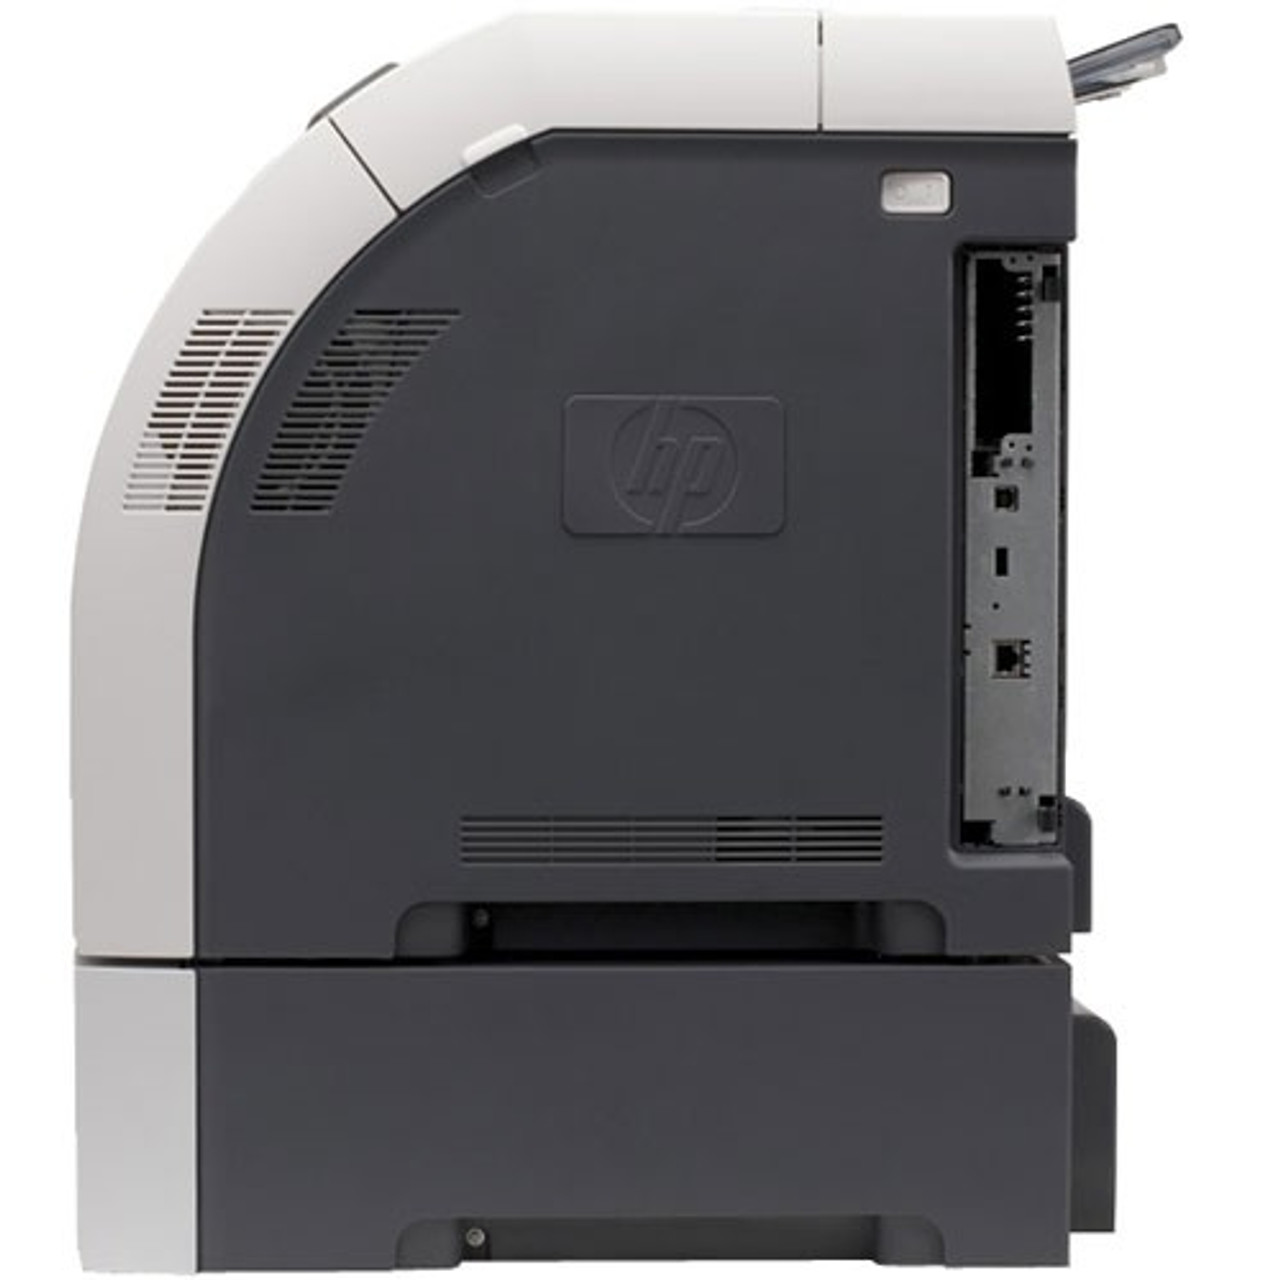 HP Color LaserJet 3800dtn Laser Printer